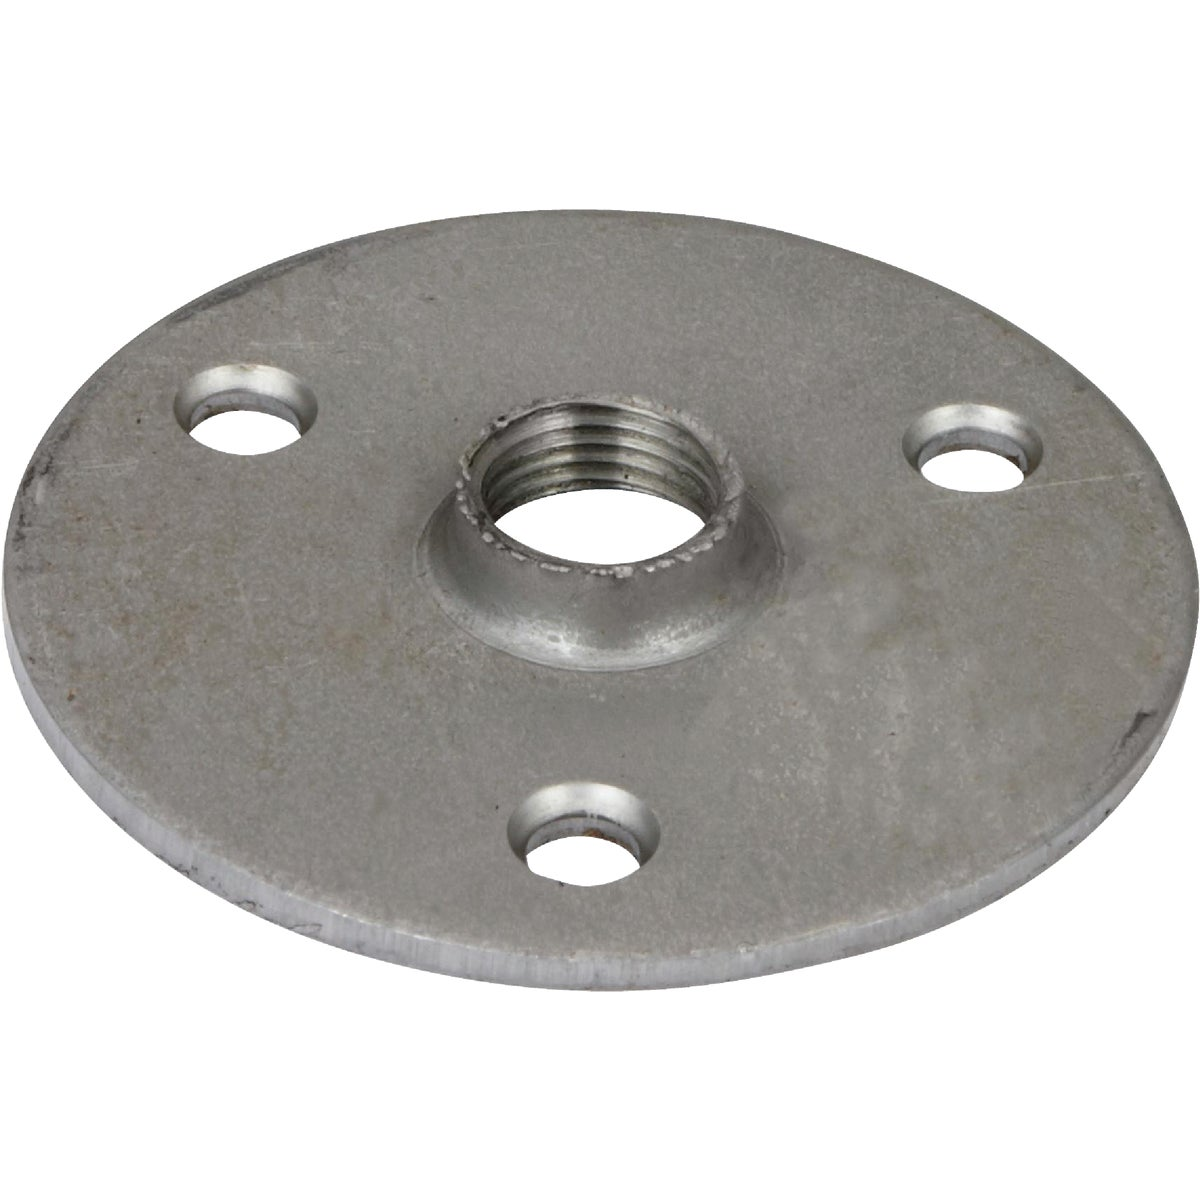 "1/4"" STEEL FLOOR FLANGE"